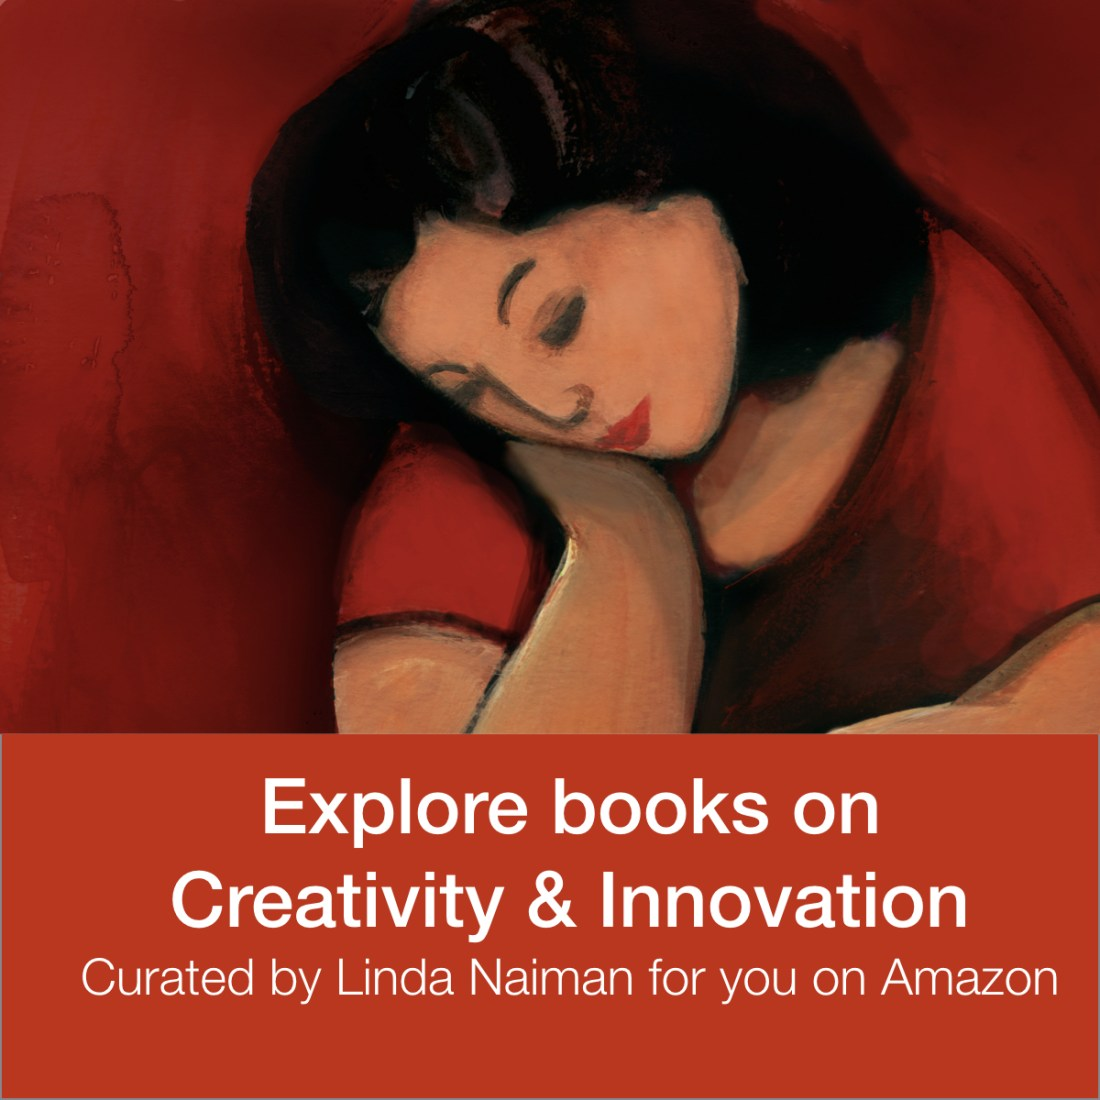 Amazon Creativity & Innovation Book Collection